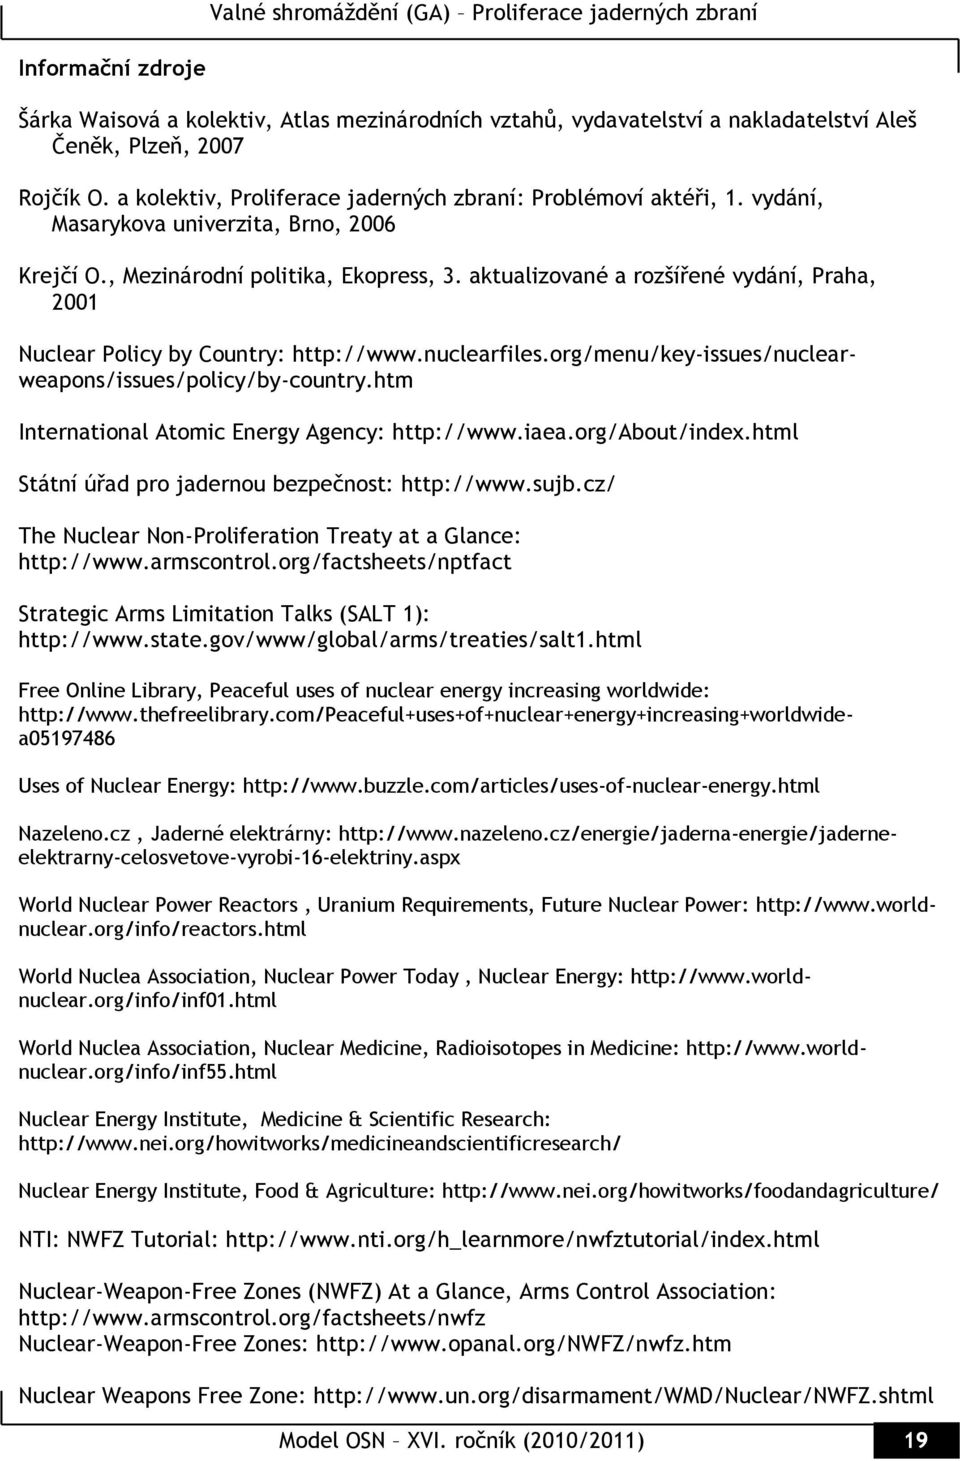 org/menu/key-issues/nuclearweapons/issues/policy/by-country.htm International Atomic Energy Agency: http://www.iaea.org/about/index.html Státní úřad pro jadernou bezpečnost: http://www.sujb.